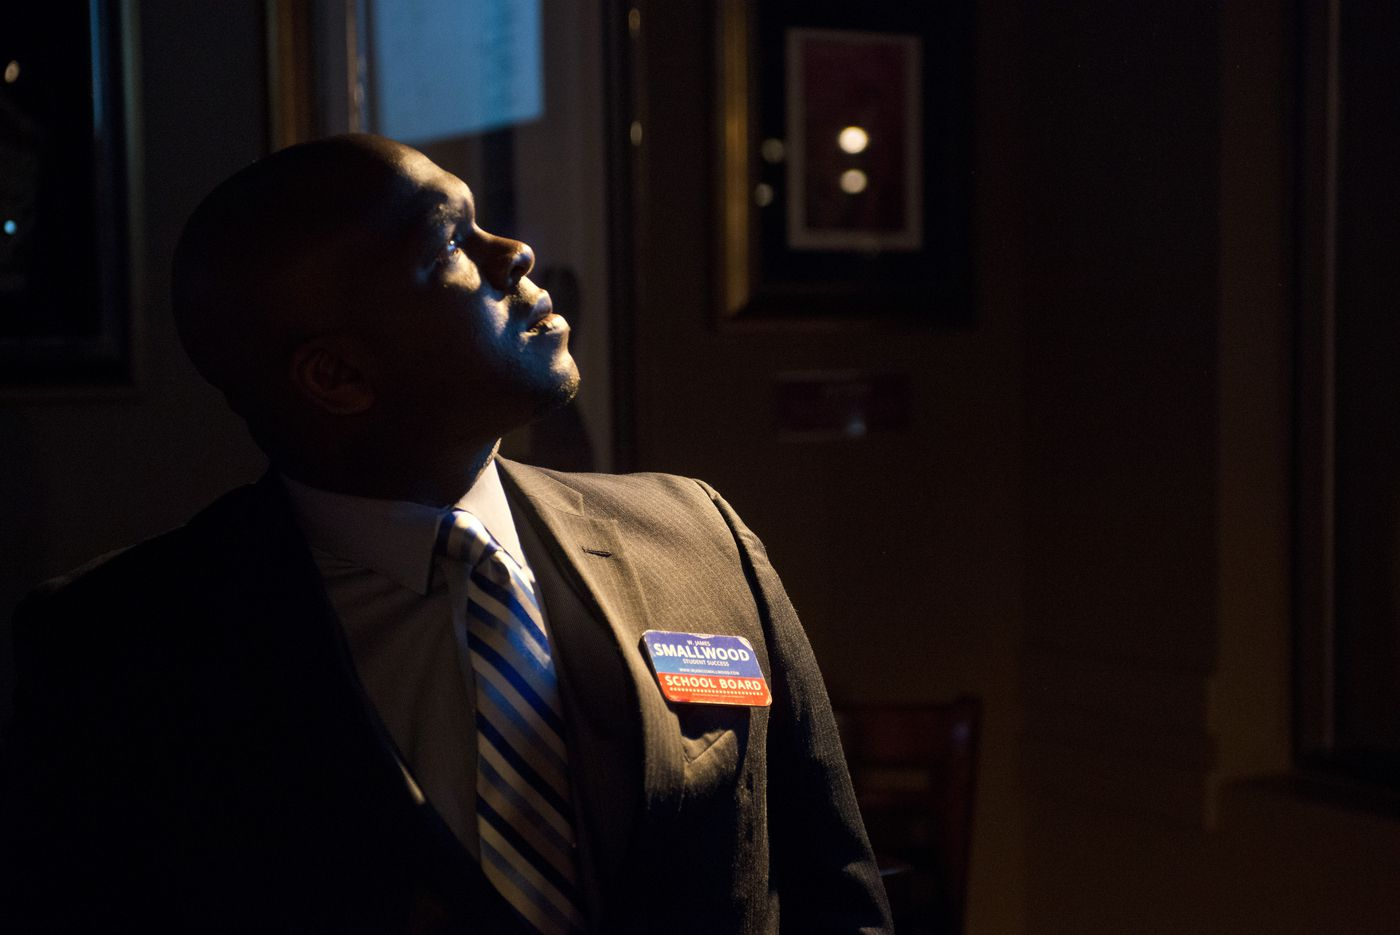 Anchorage School Board candidate James Smallwood watches results come in at Hard Rock Cafe on Tuesday. (Marc Lester / Alaska Dispatch News)